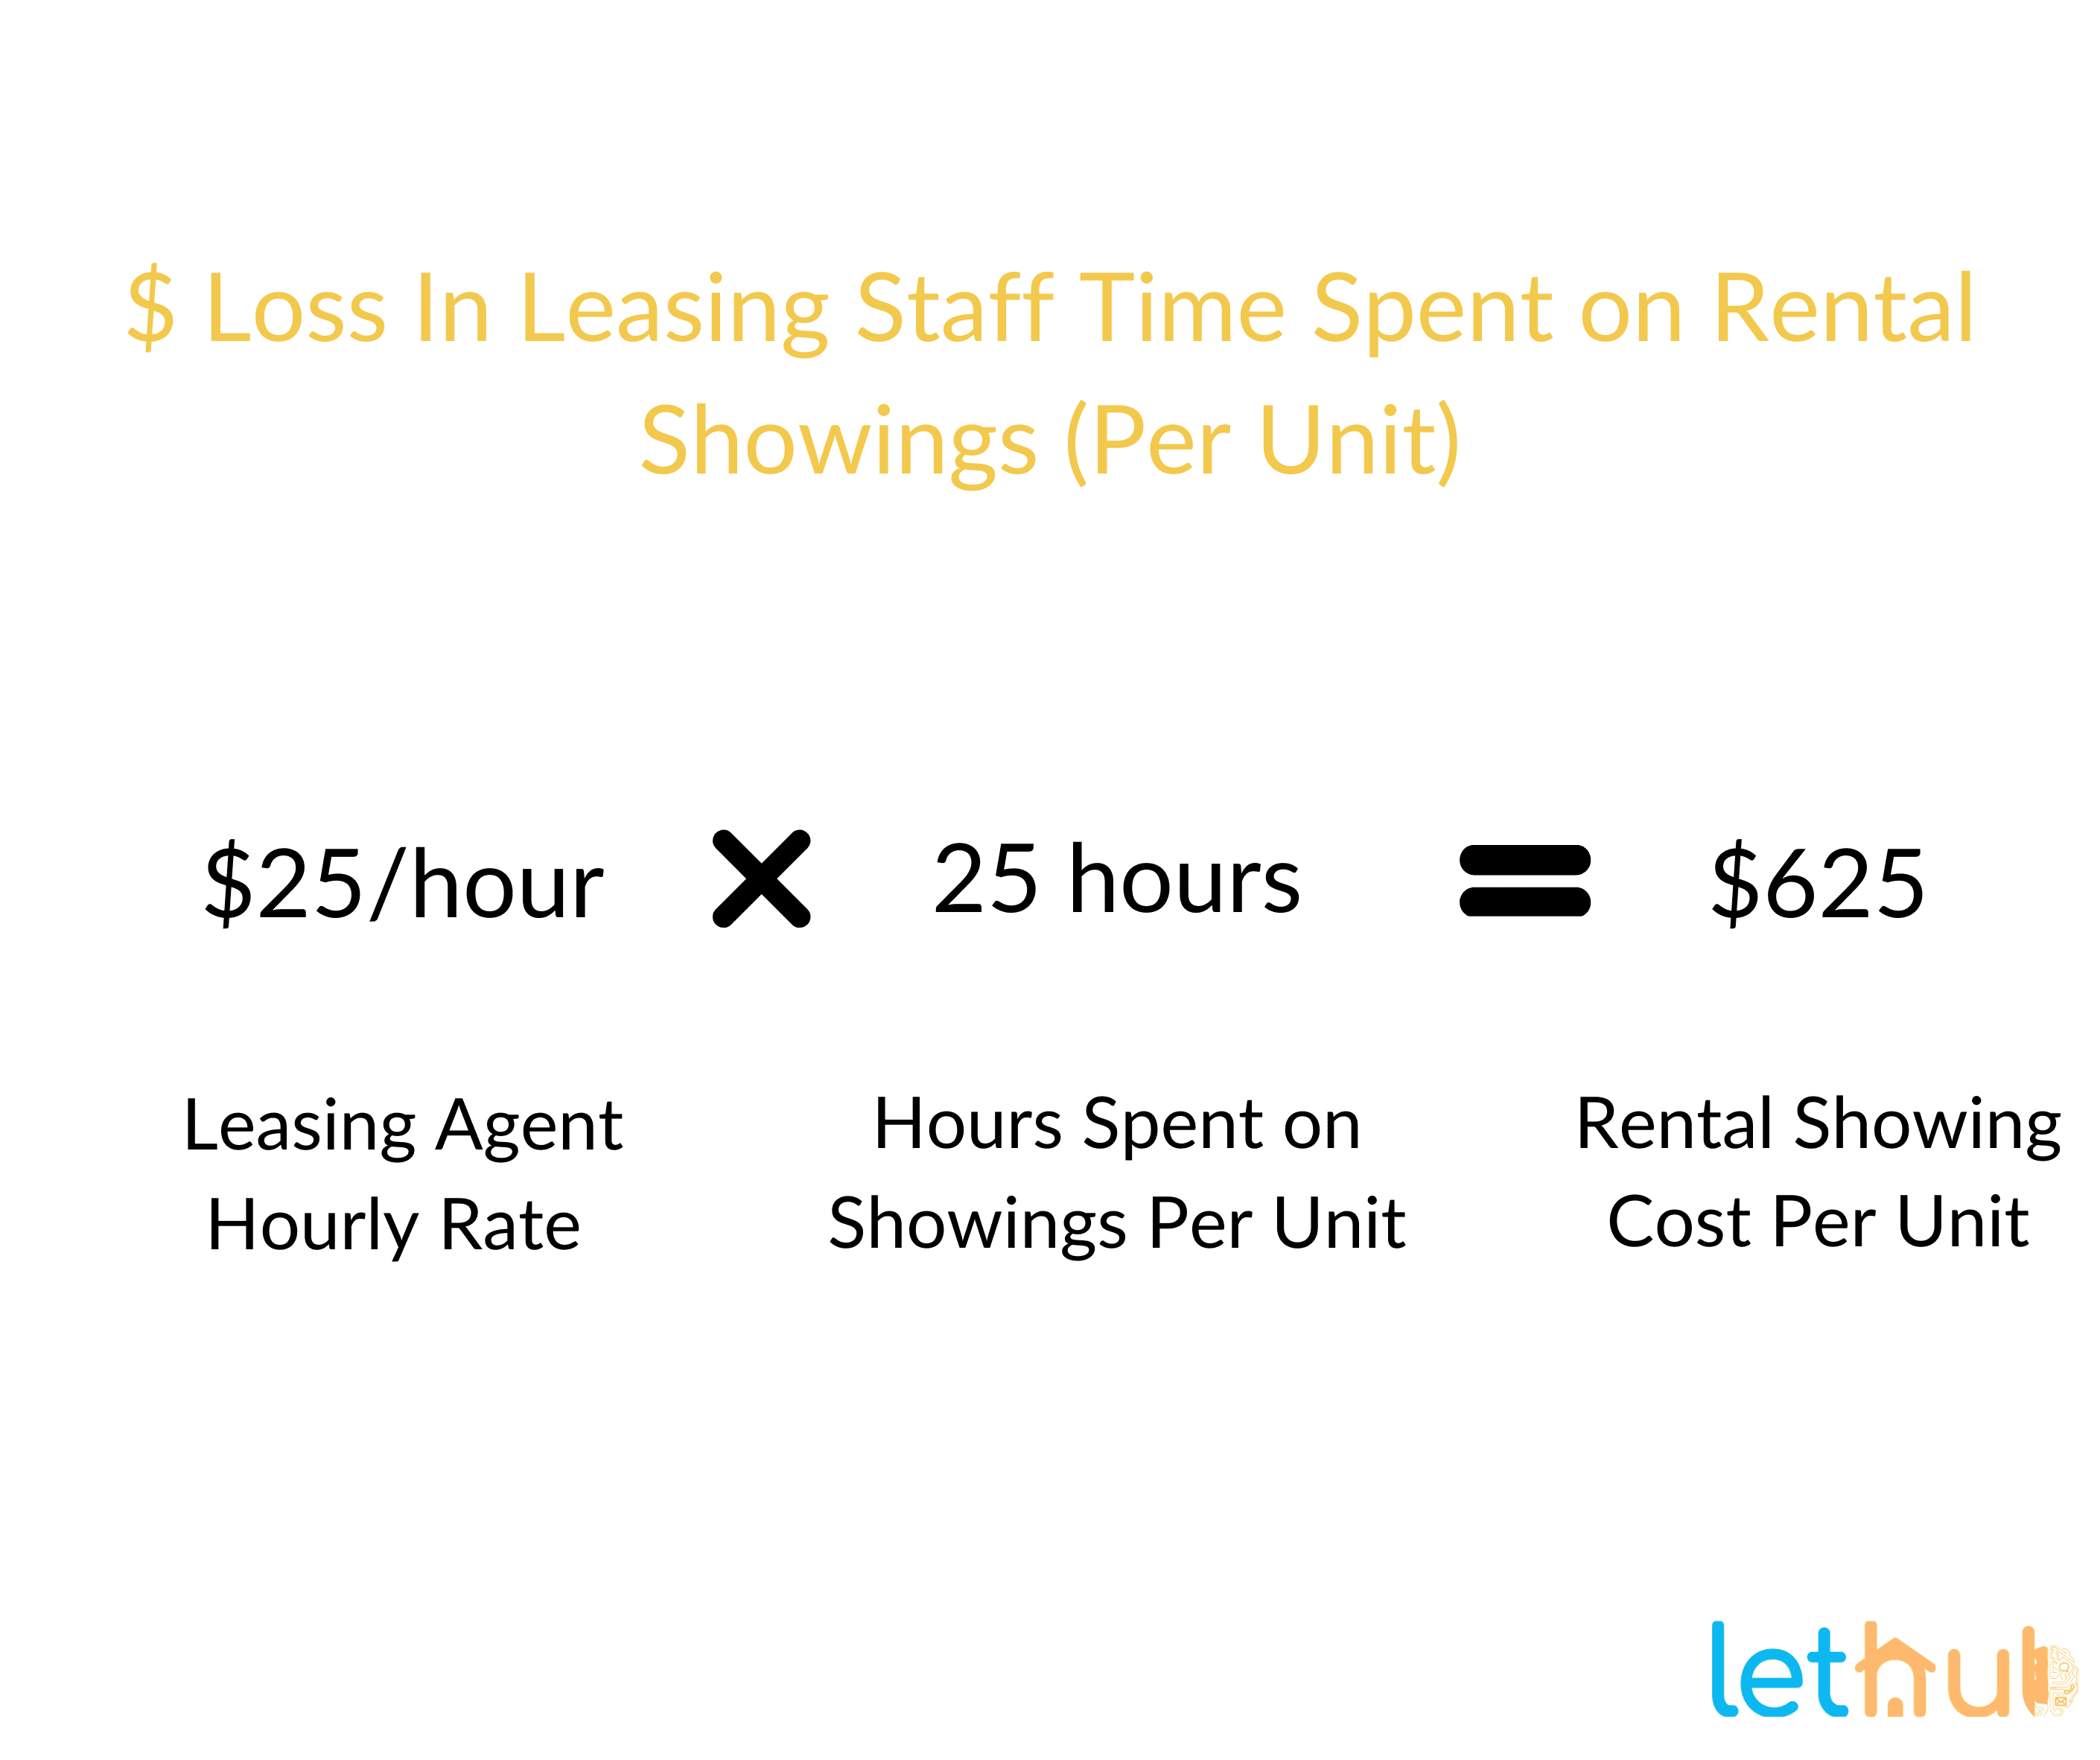 Leasing time spent per Rental showing